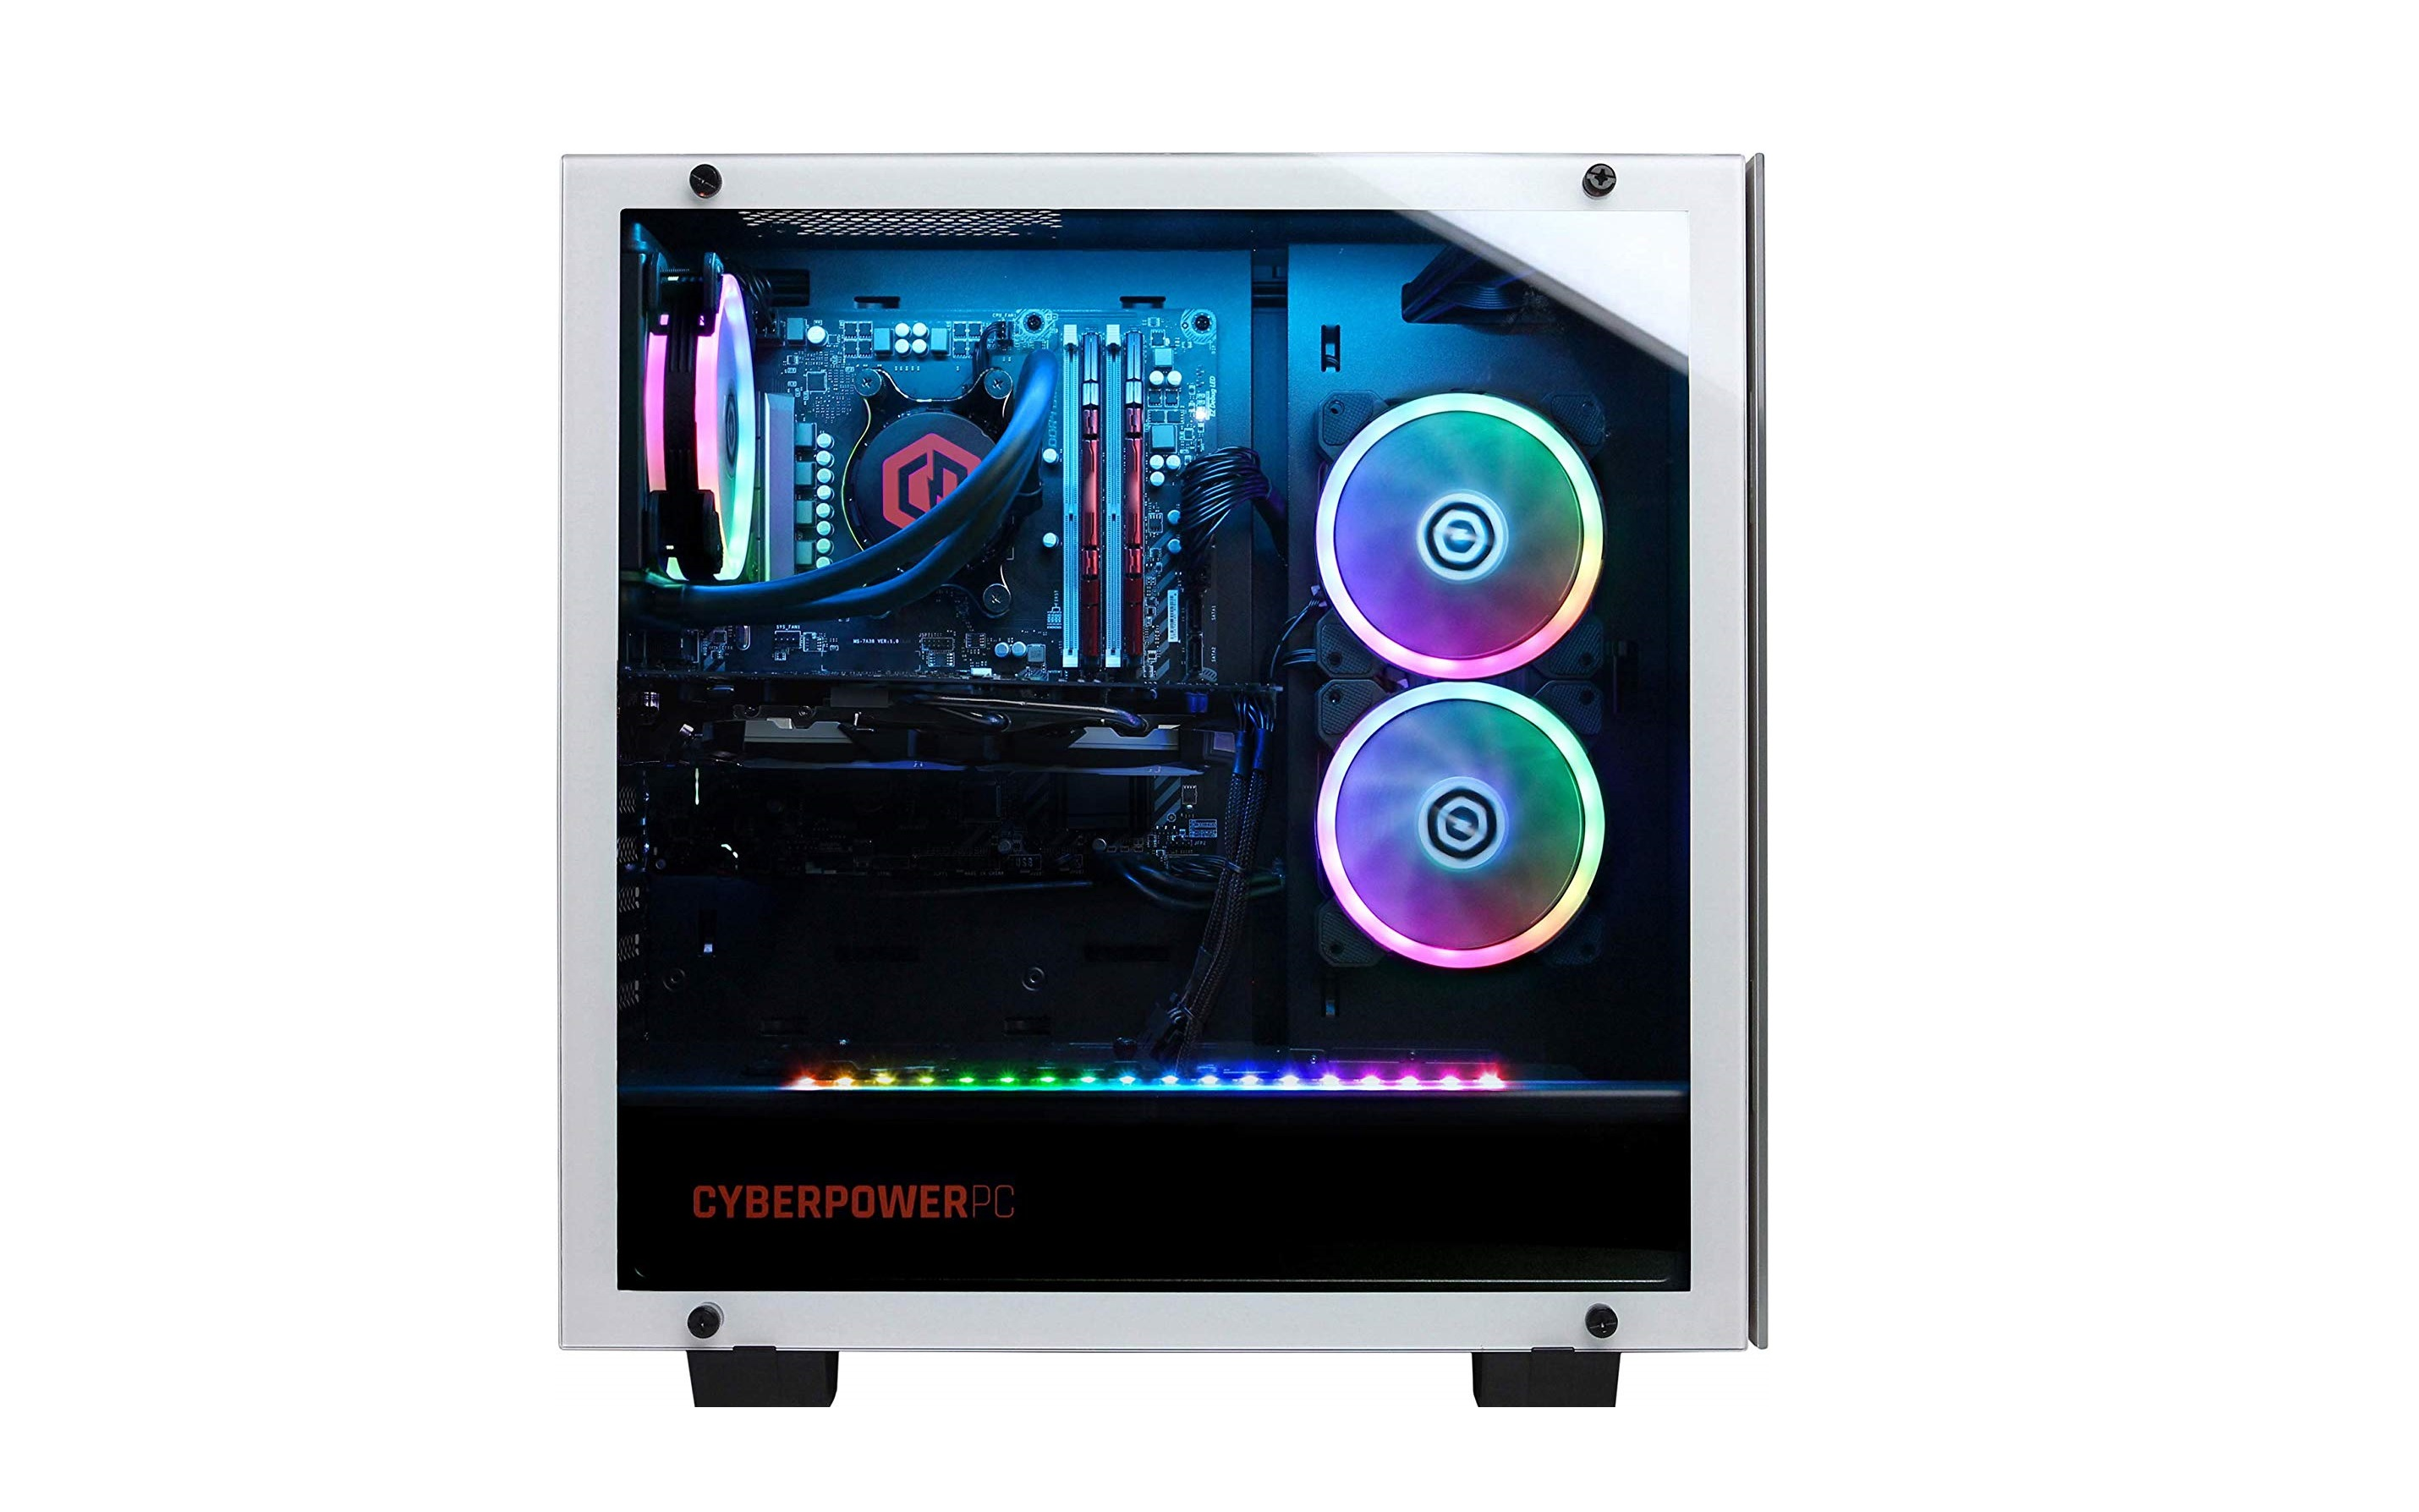 One of The Top 10 Gaming PCs of 2020